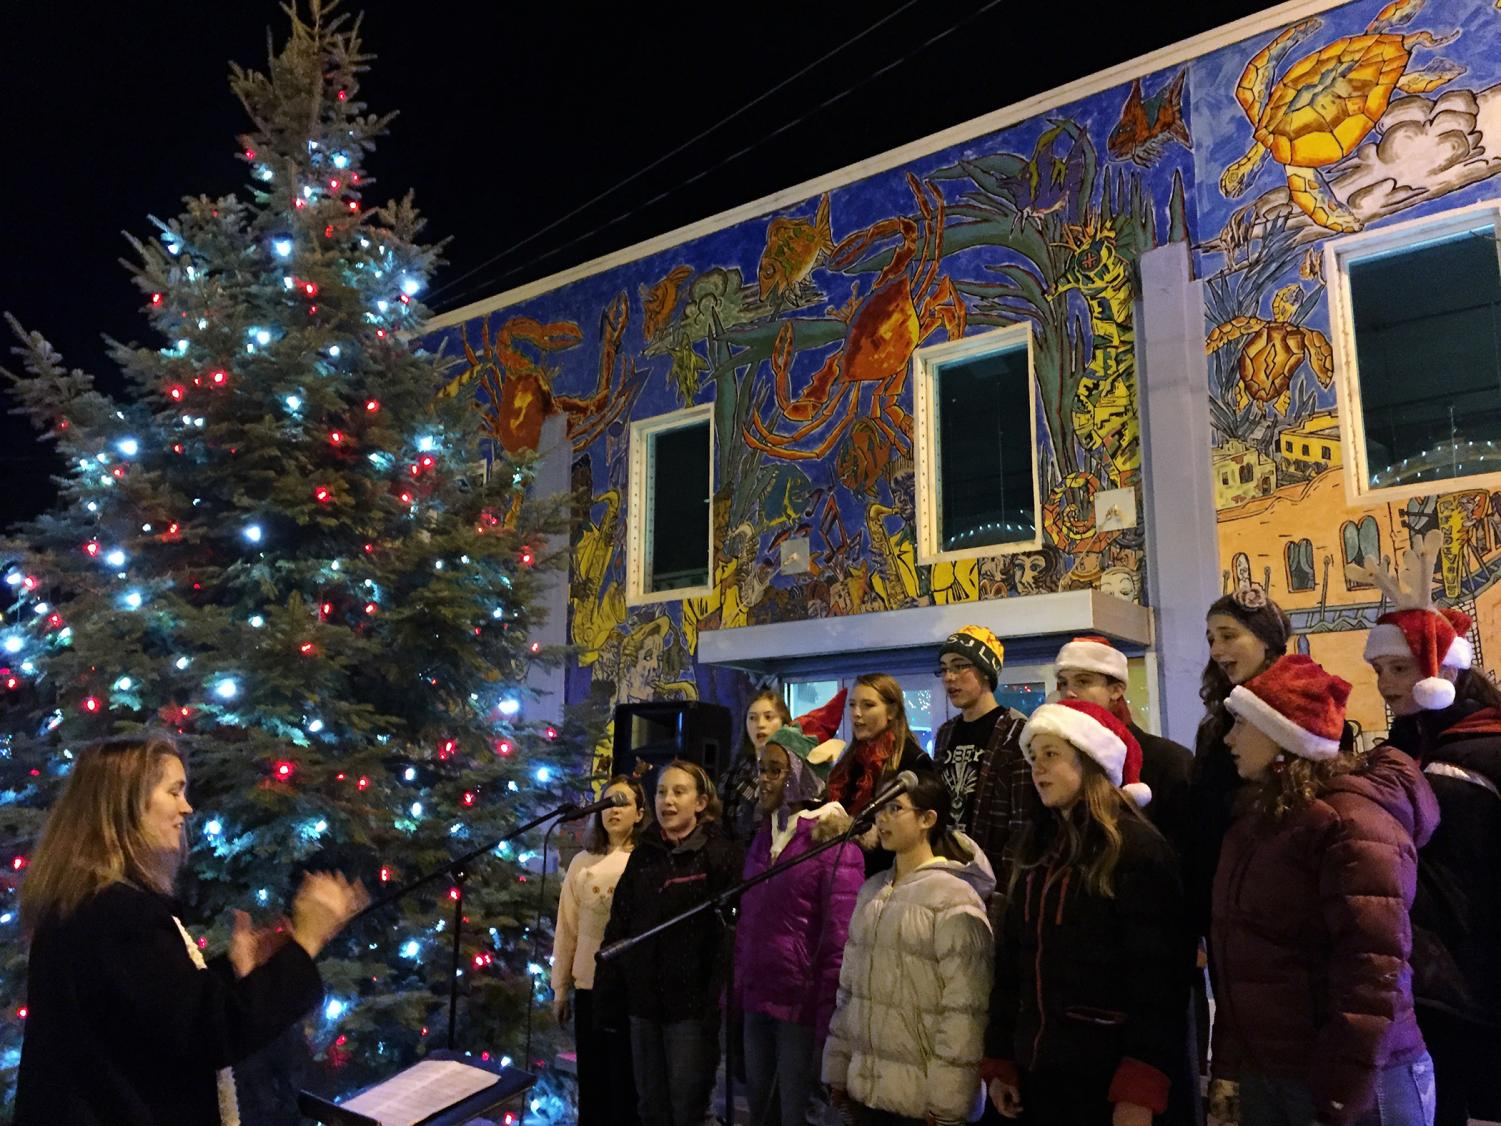 The 2016 Holiday Fest in downtown Pullman featured choir performances. This year, they are including more local businesses  and featuring the local band Paradox at Rico's Public House.